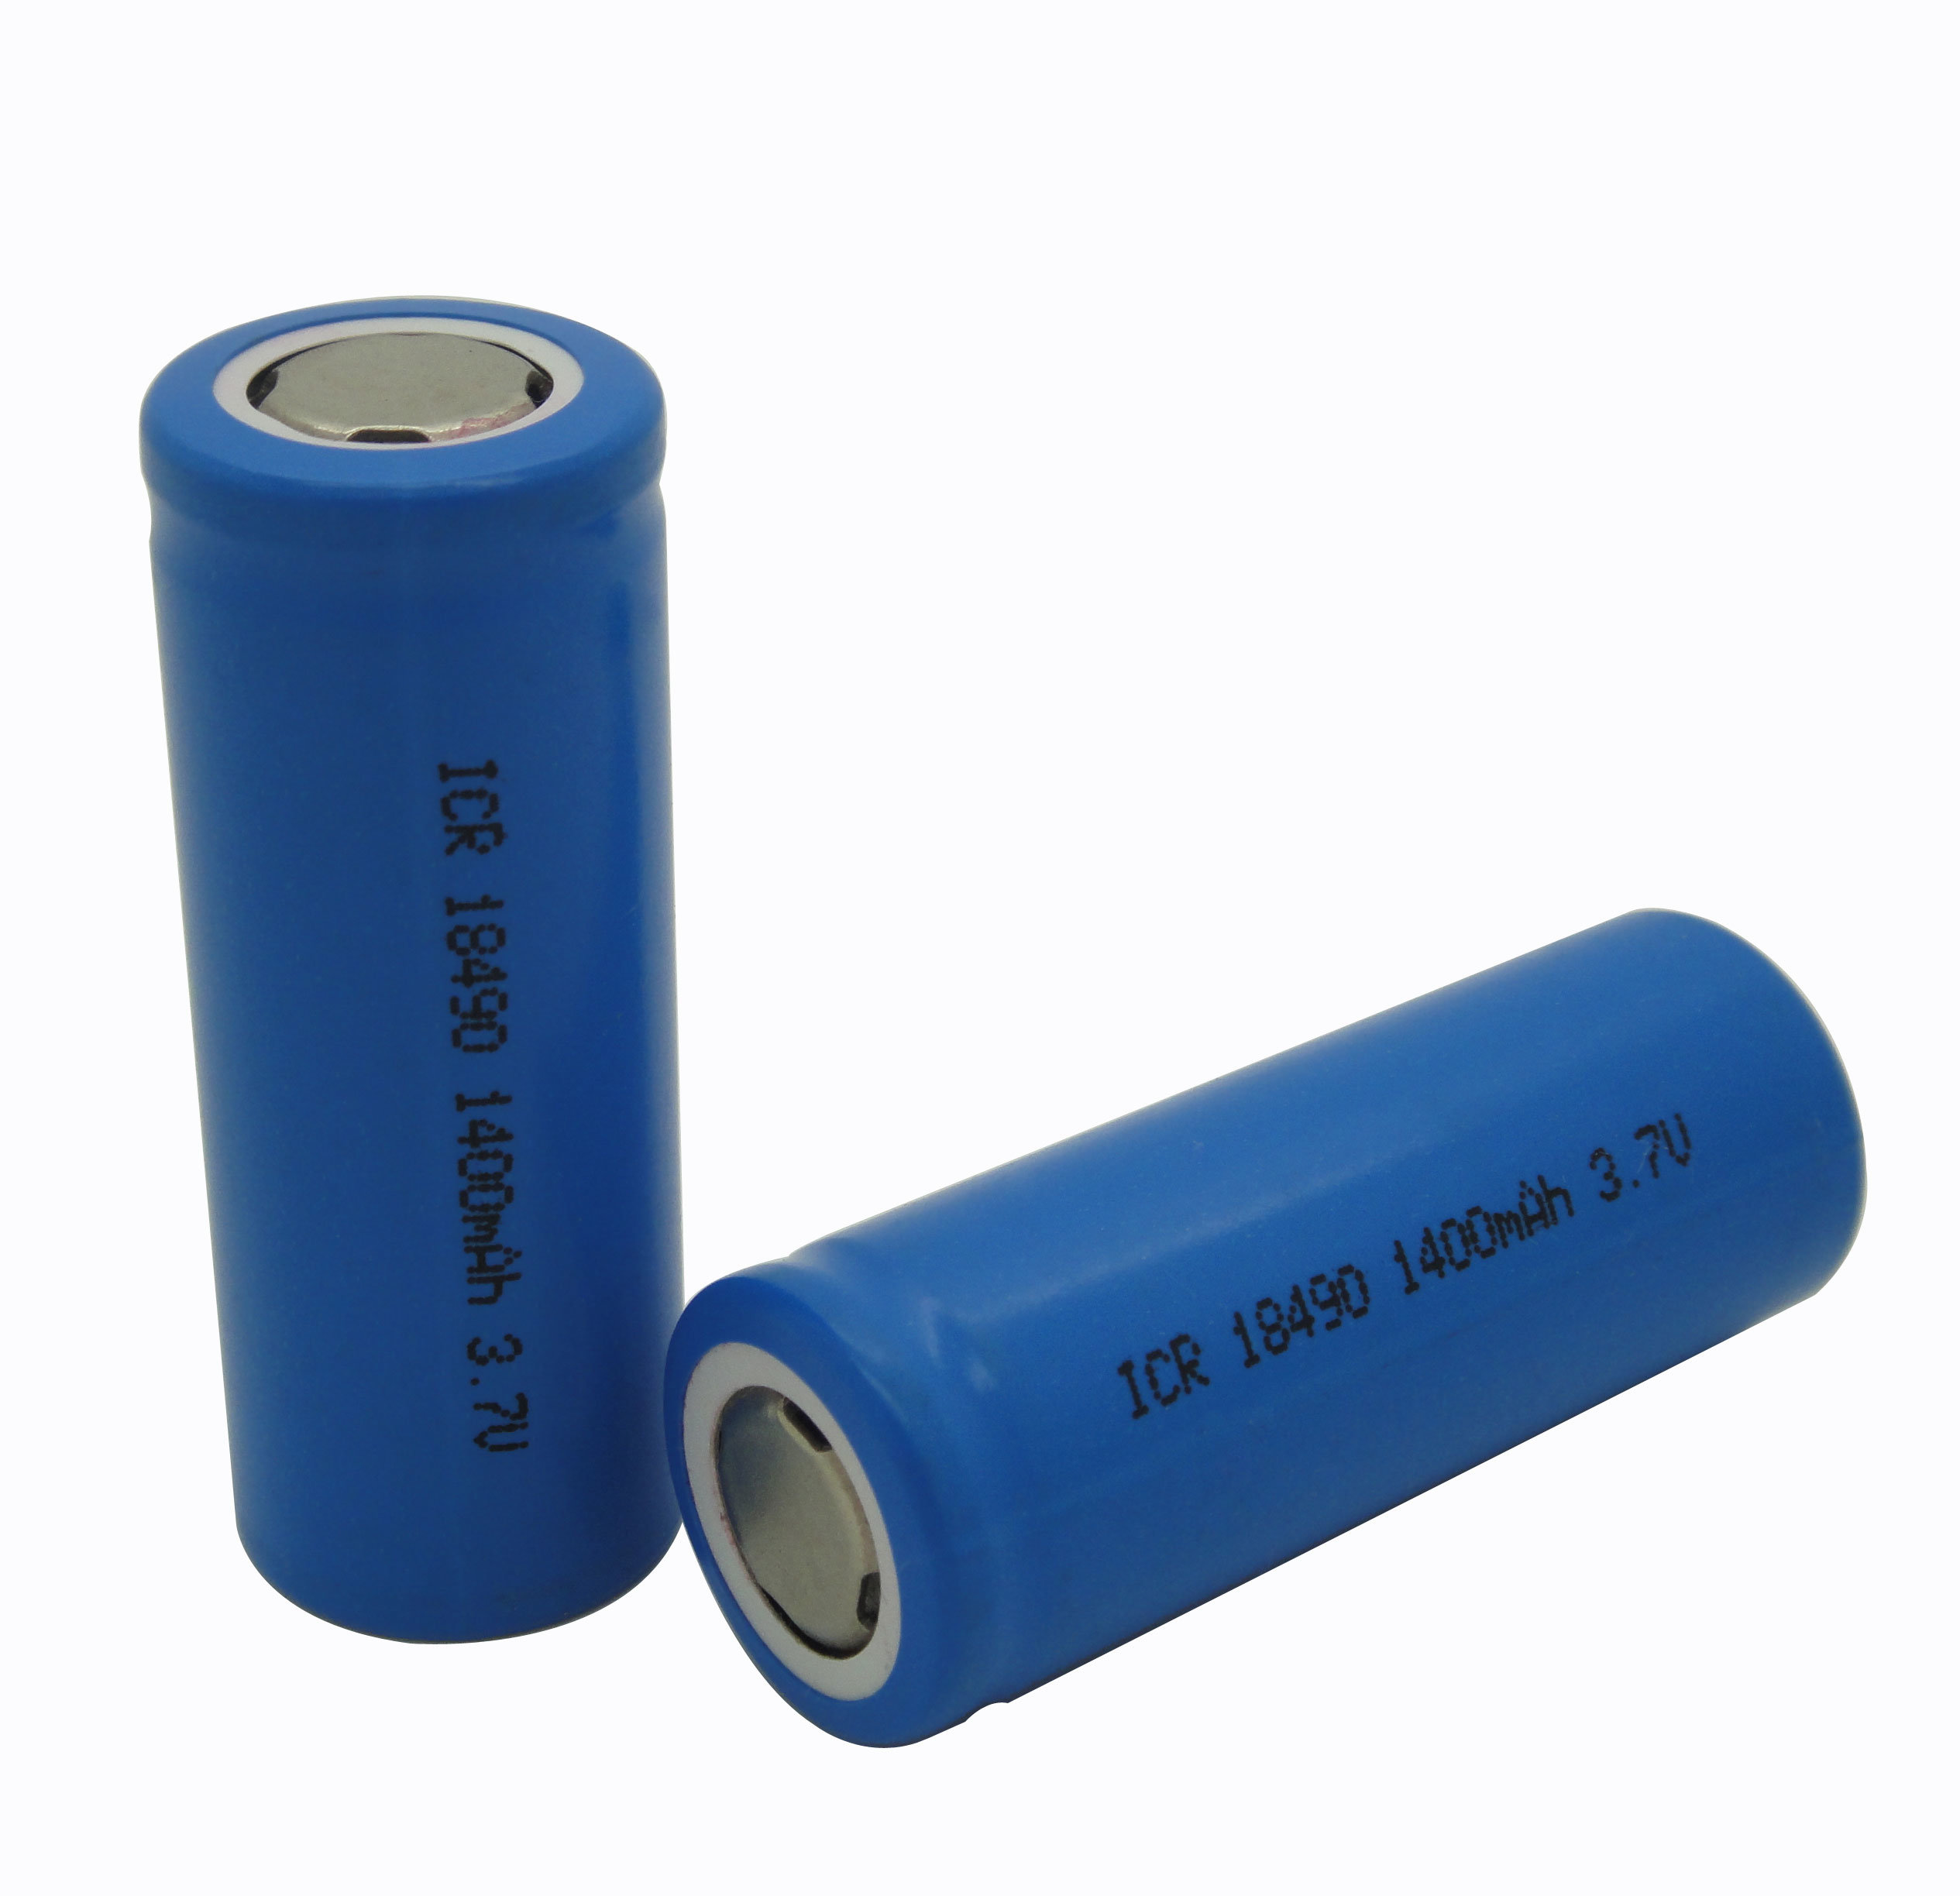 7V 1, 400mAh ICR18490 Cylindrical Li-ion Battery for Digital Devices